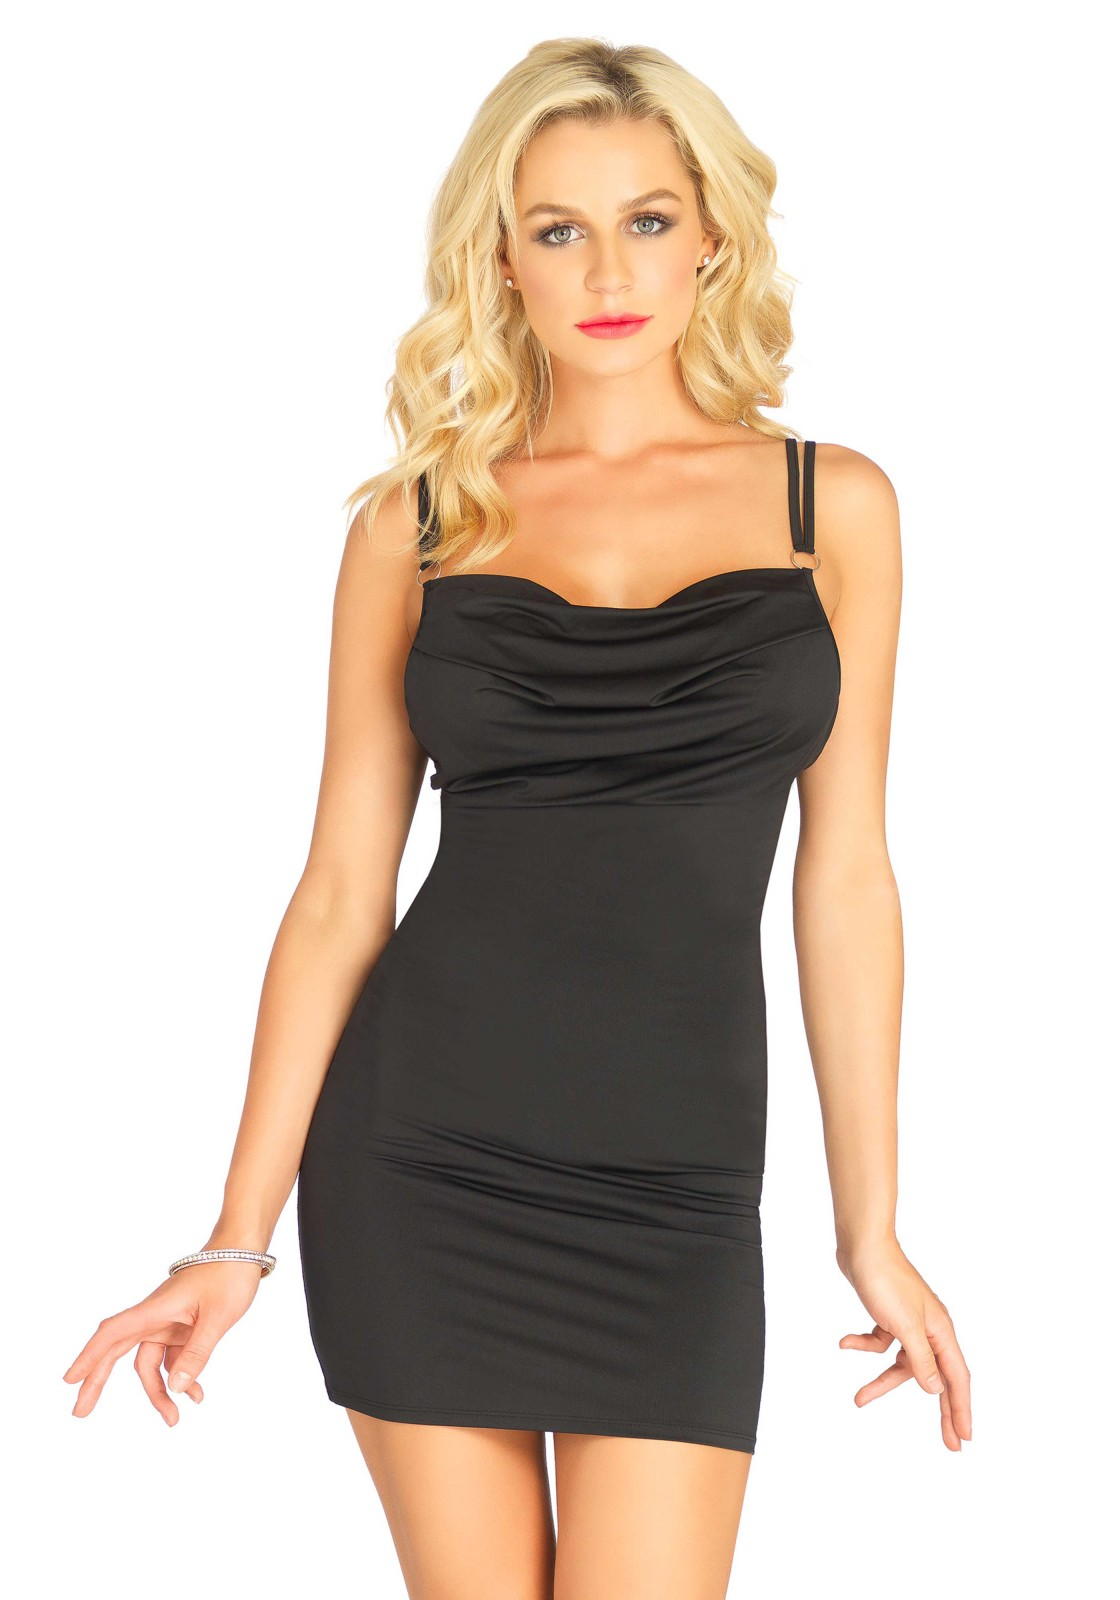 Dress Chiara is a spandex bodycon dress with drape front, ring detail and adjustable straps.  The length measured from the shoulder is 80 cm/ 31.5 inch. The model has a length of 182 cm/ 70 inch and is wearing a size S.